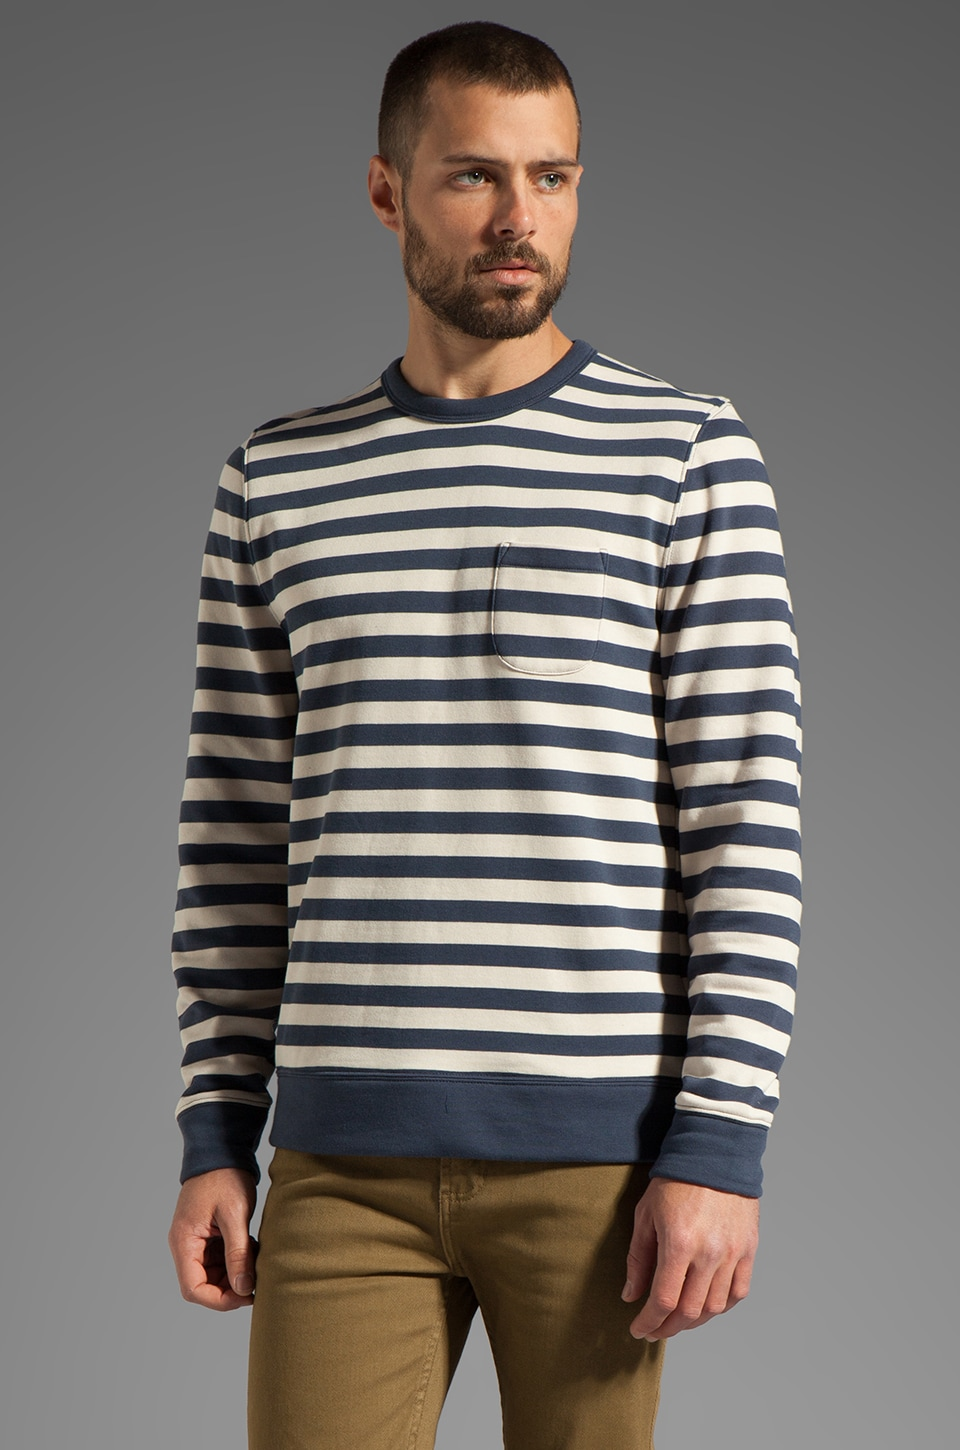 Obey Dano Crew Sweatshirt in Fog/Mood Indigo